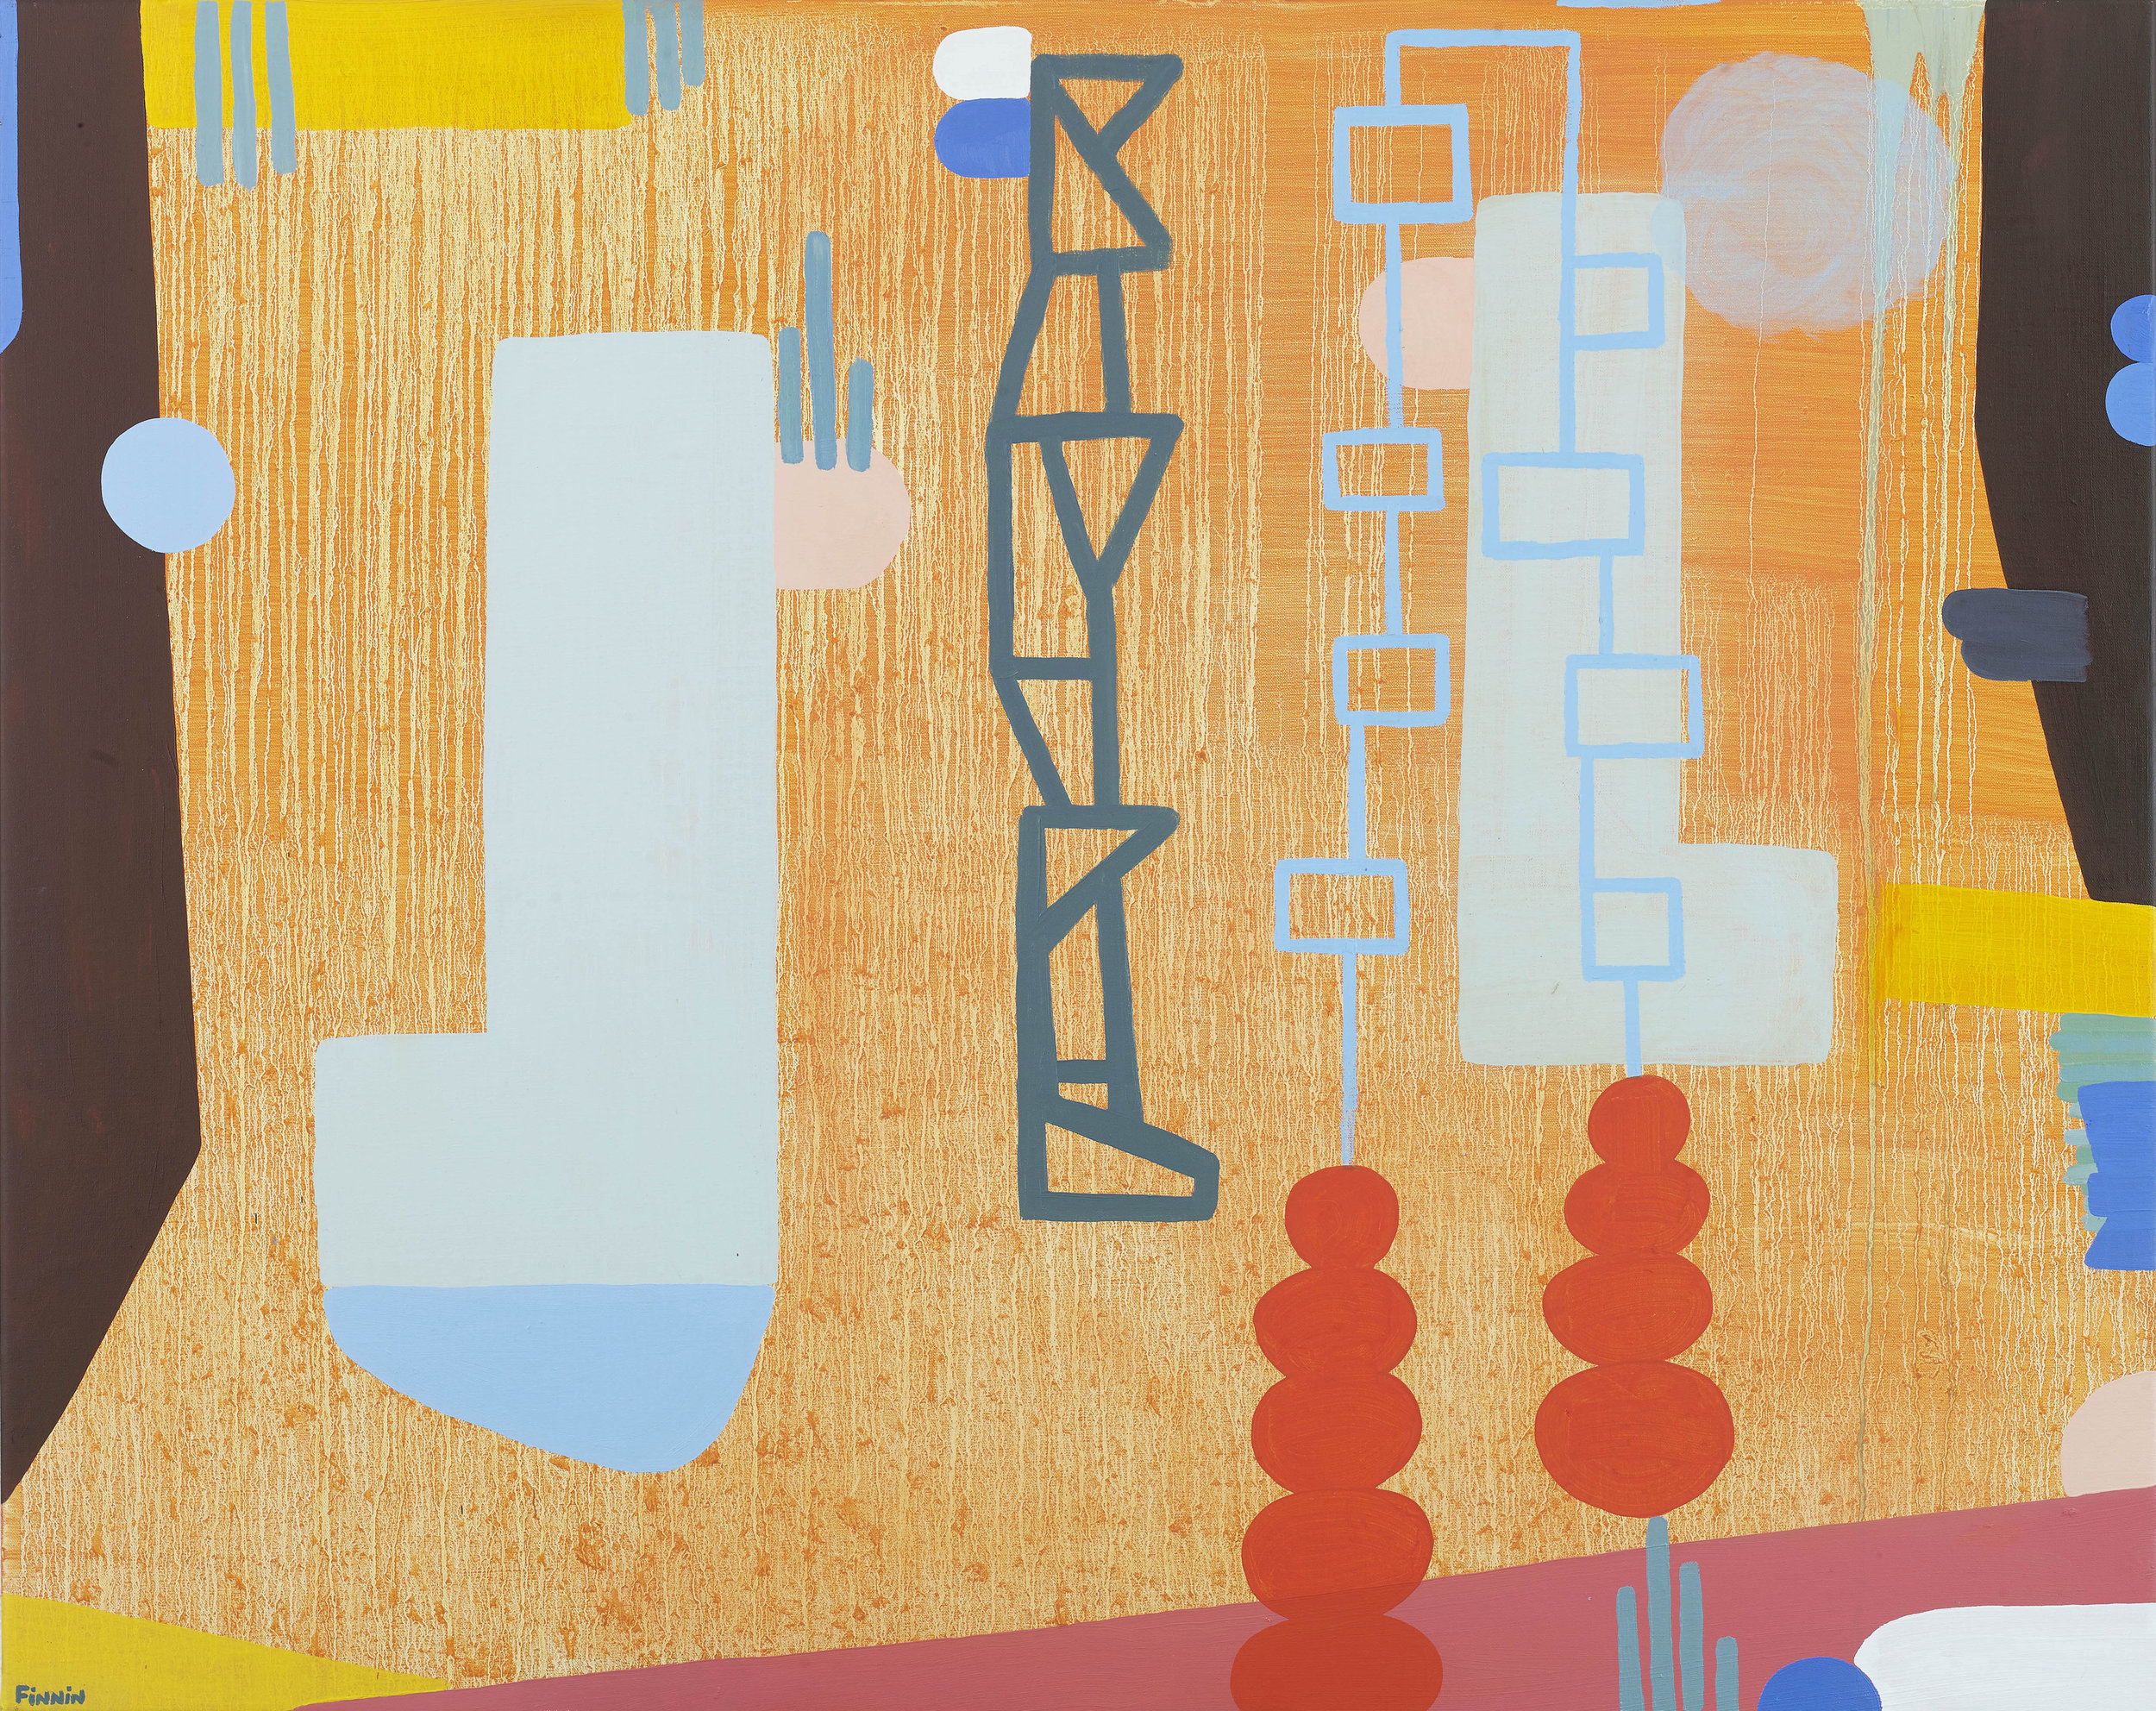 Martin Finnin,  (b. 1968), Dreams of Balconia, Oil on Canvas, 2019, 120 x 150 cm.